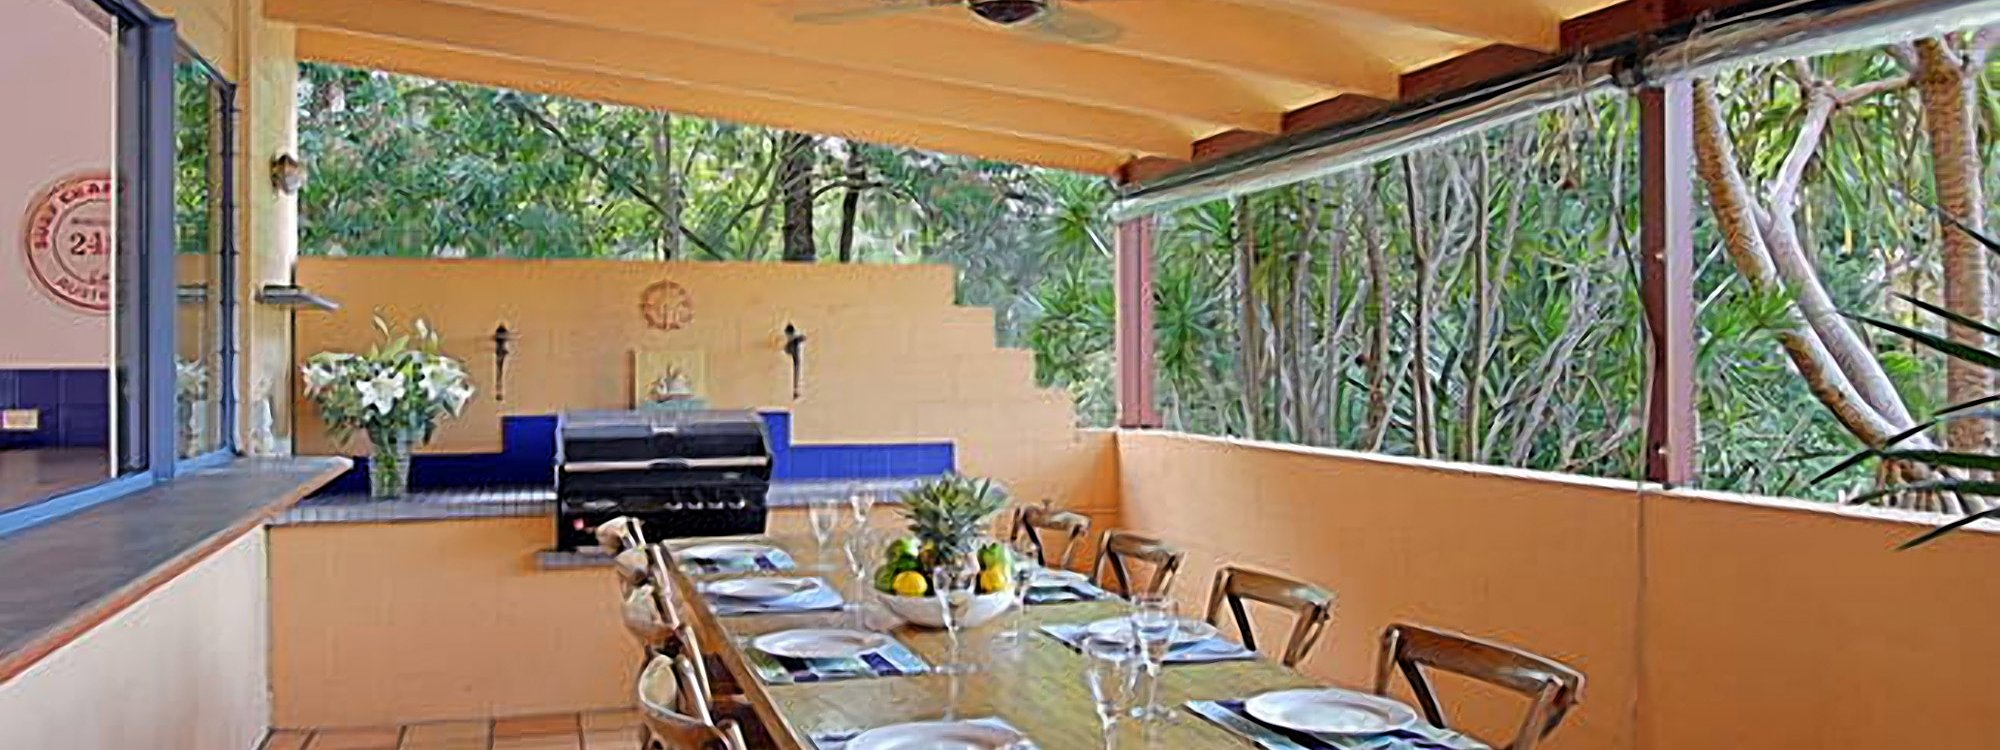 Aurora Byron Bay - Outdoor dining and BBQ area with private outlook